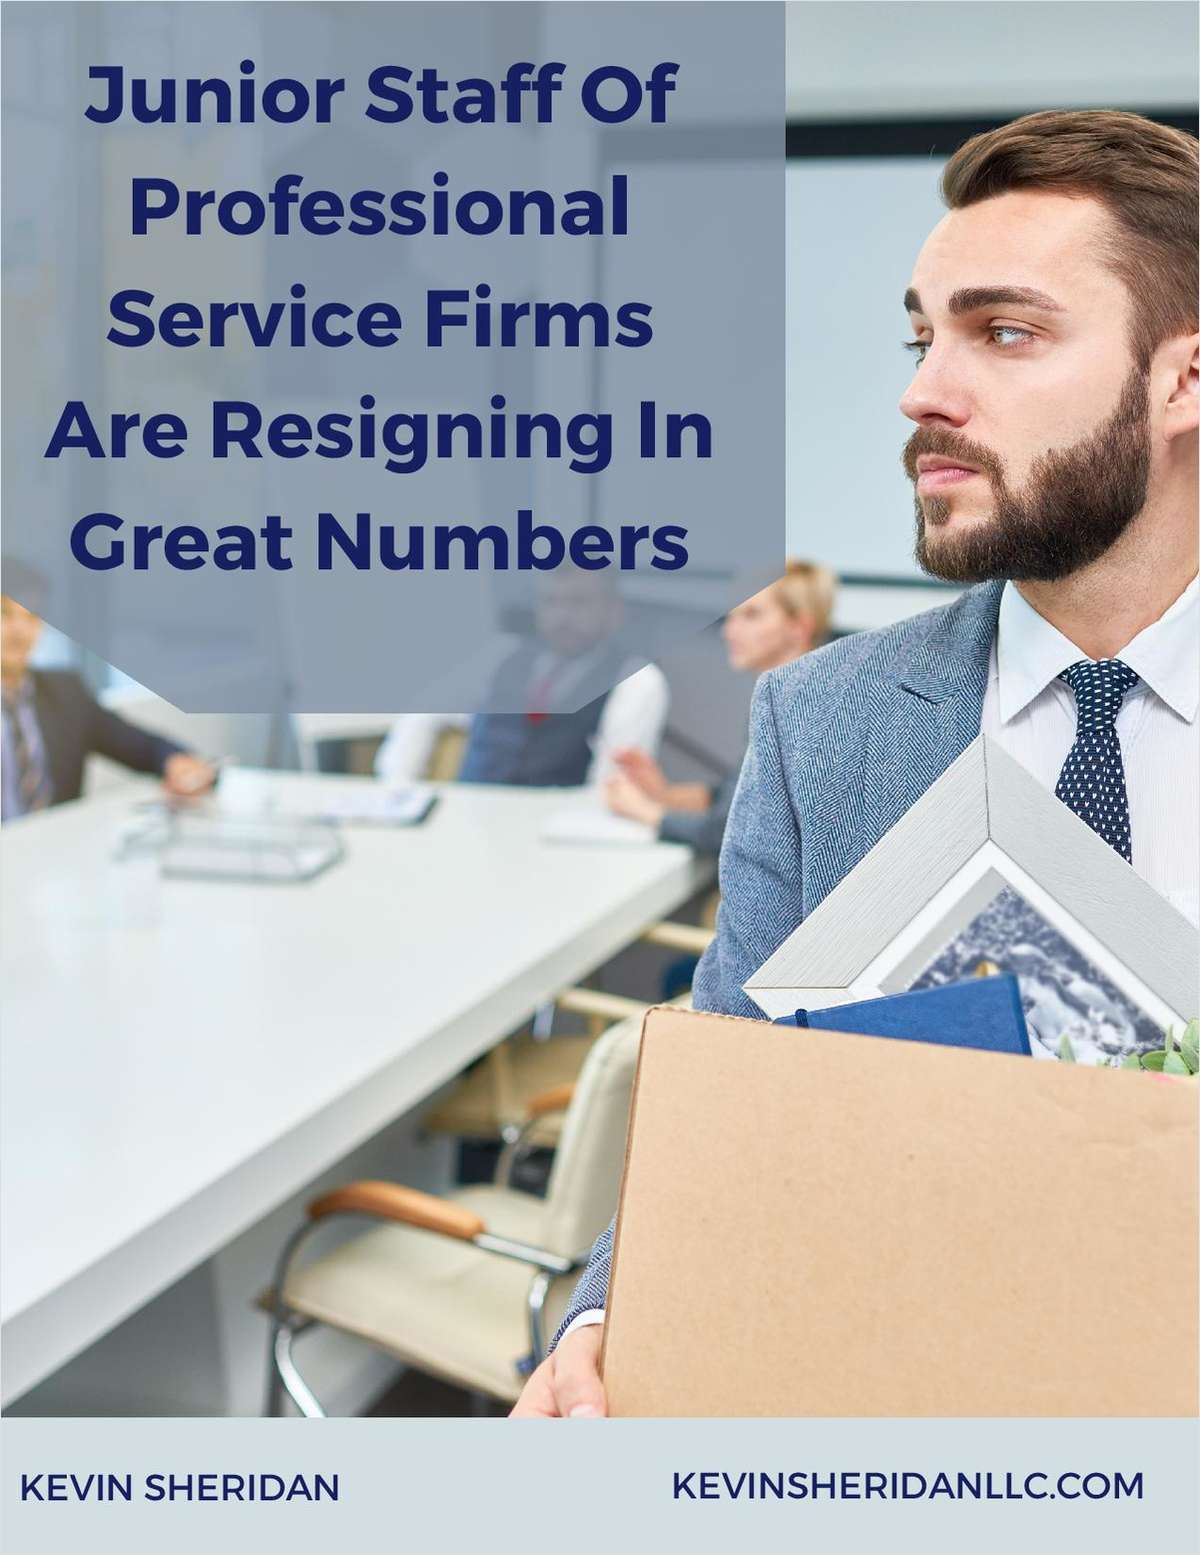 Junior Staff Of Professional Service Firms Are Resigning In Great Numbers